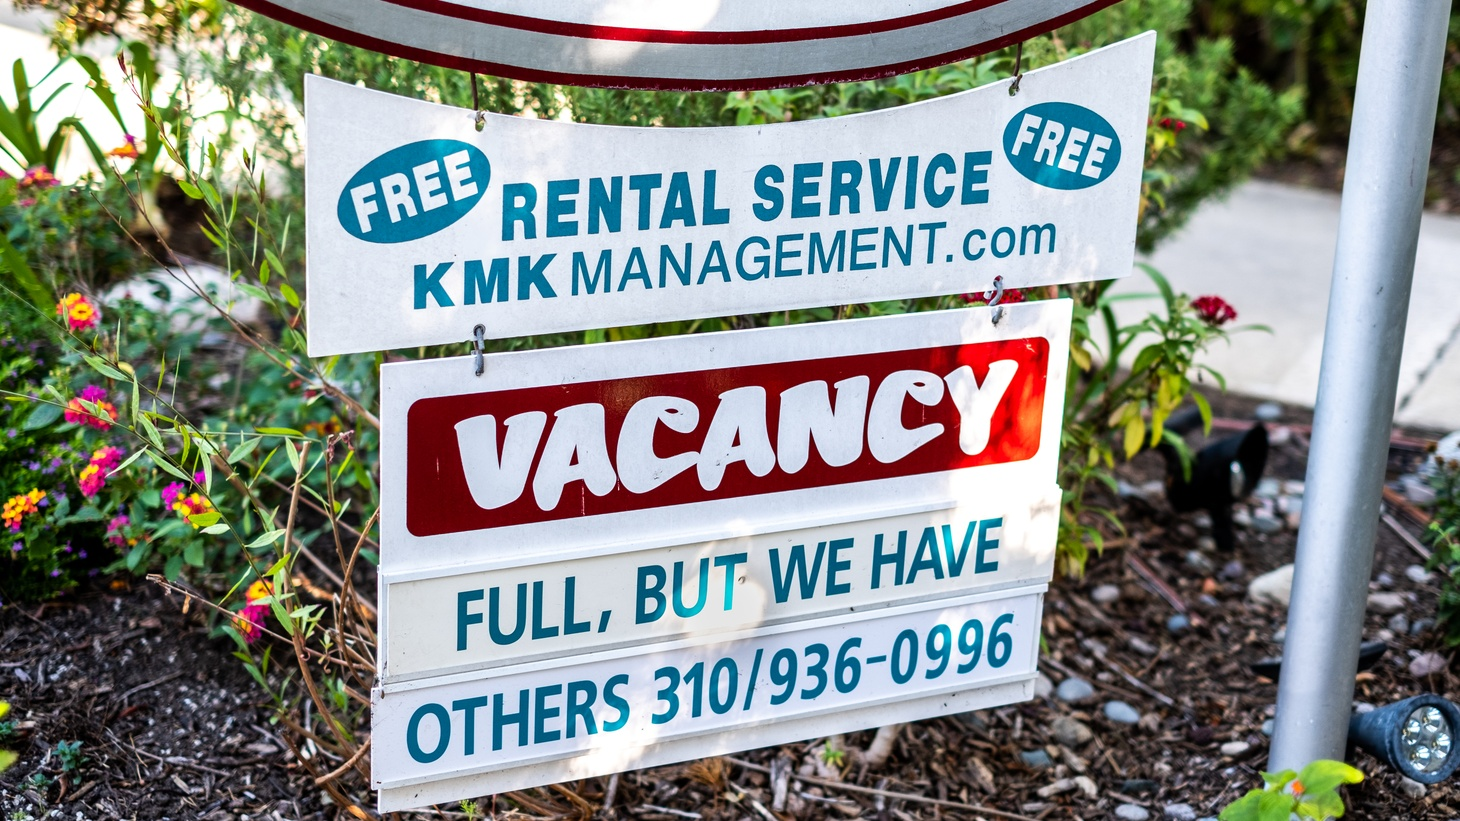 A vacancy status sign outside an apartment building in Culver City, California.